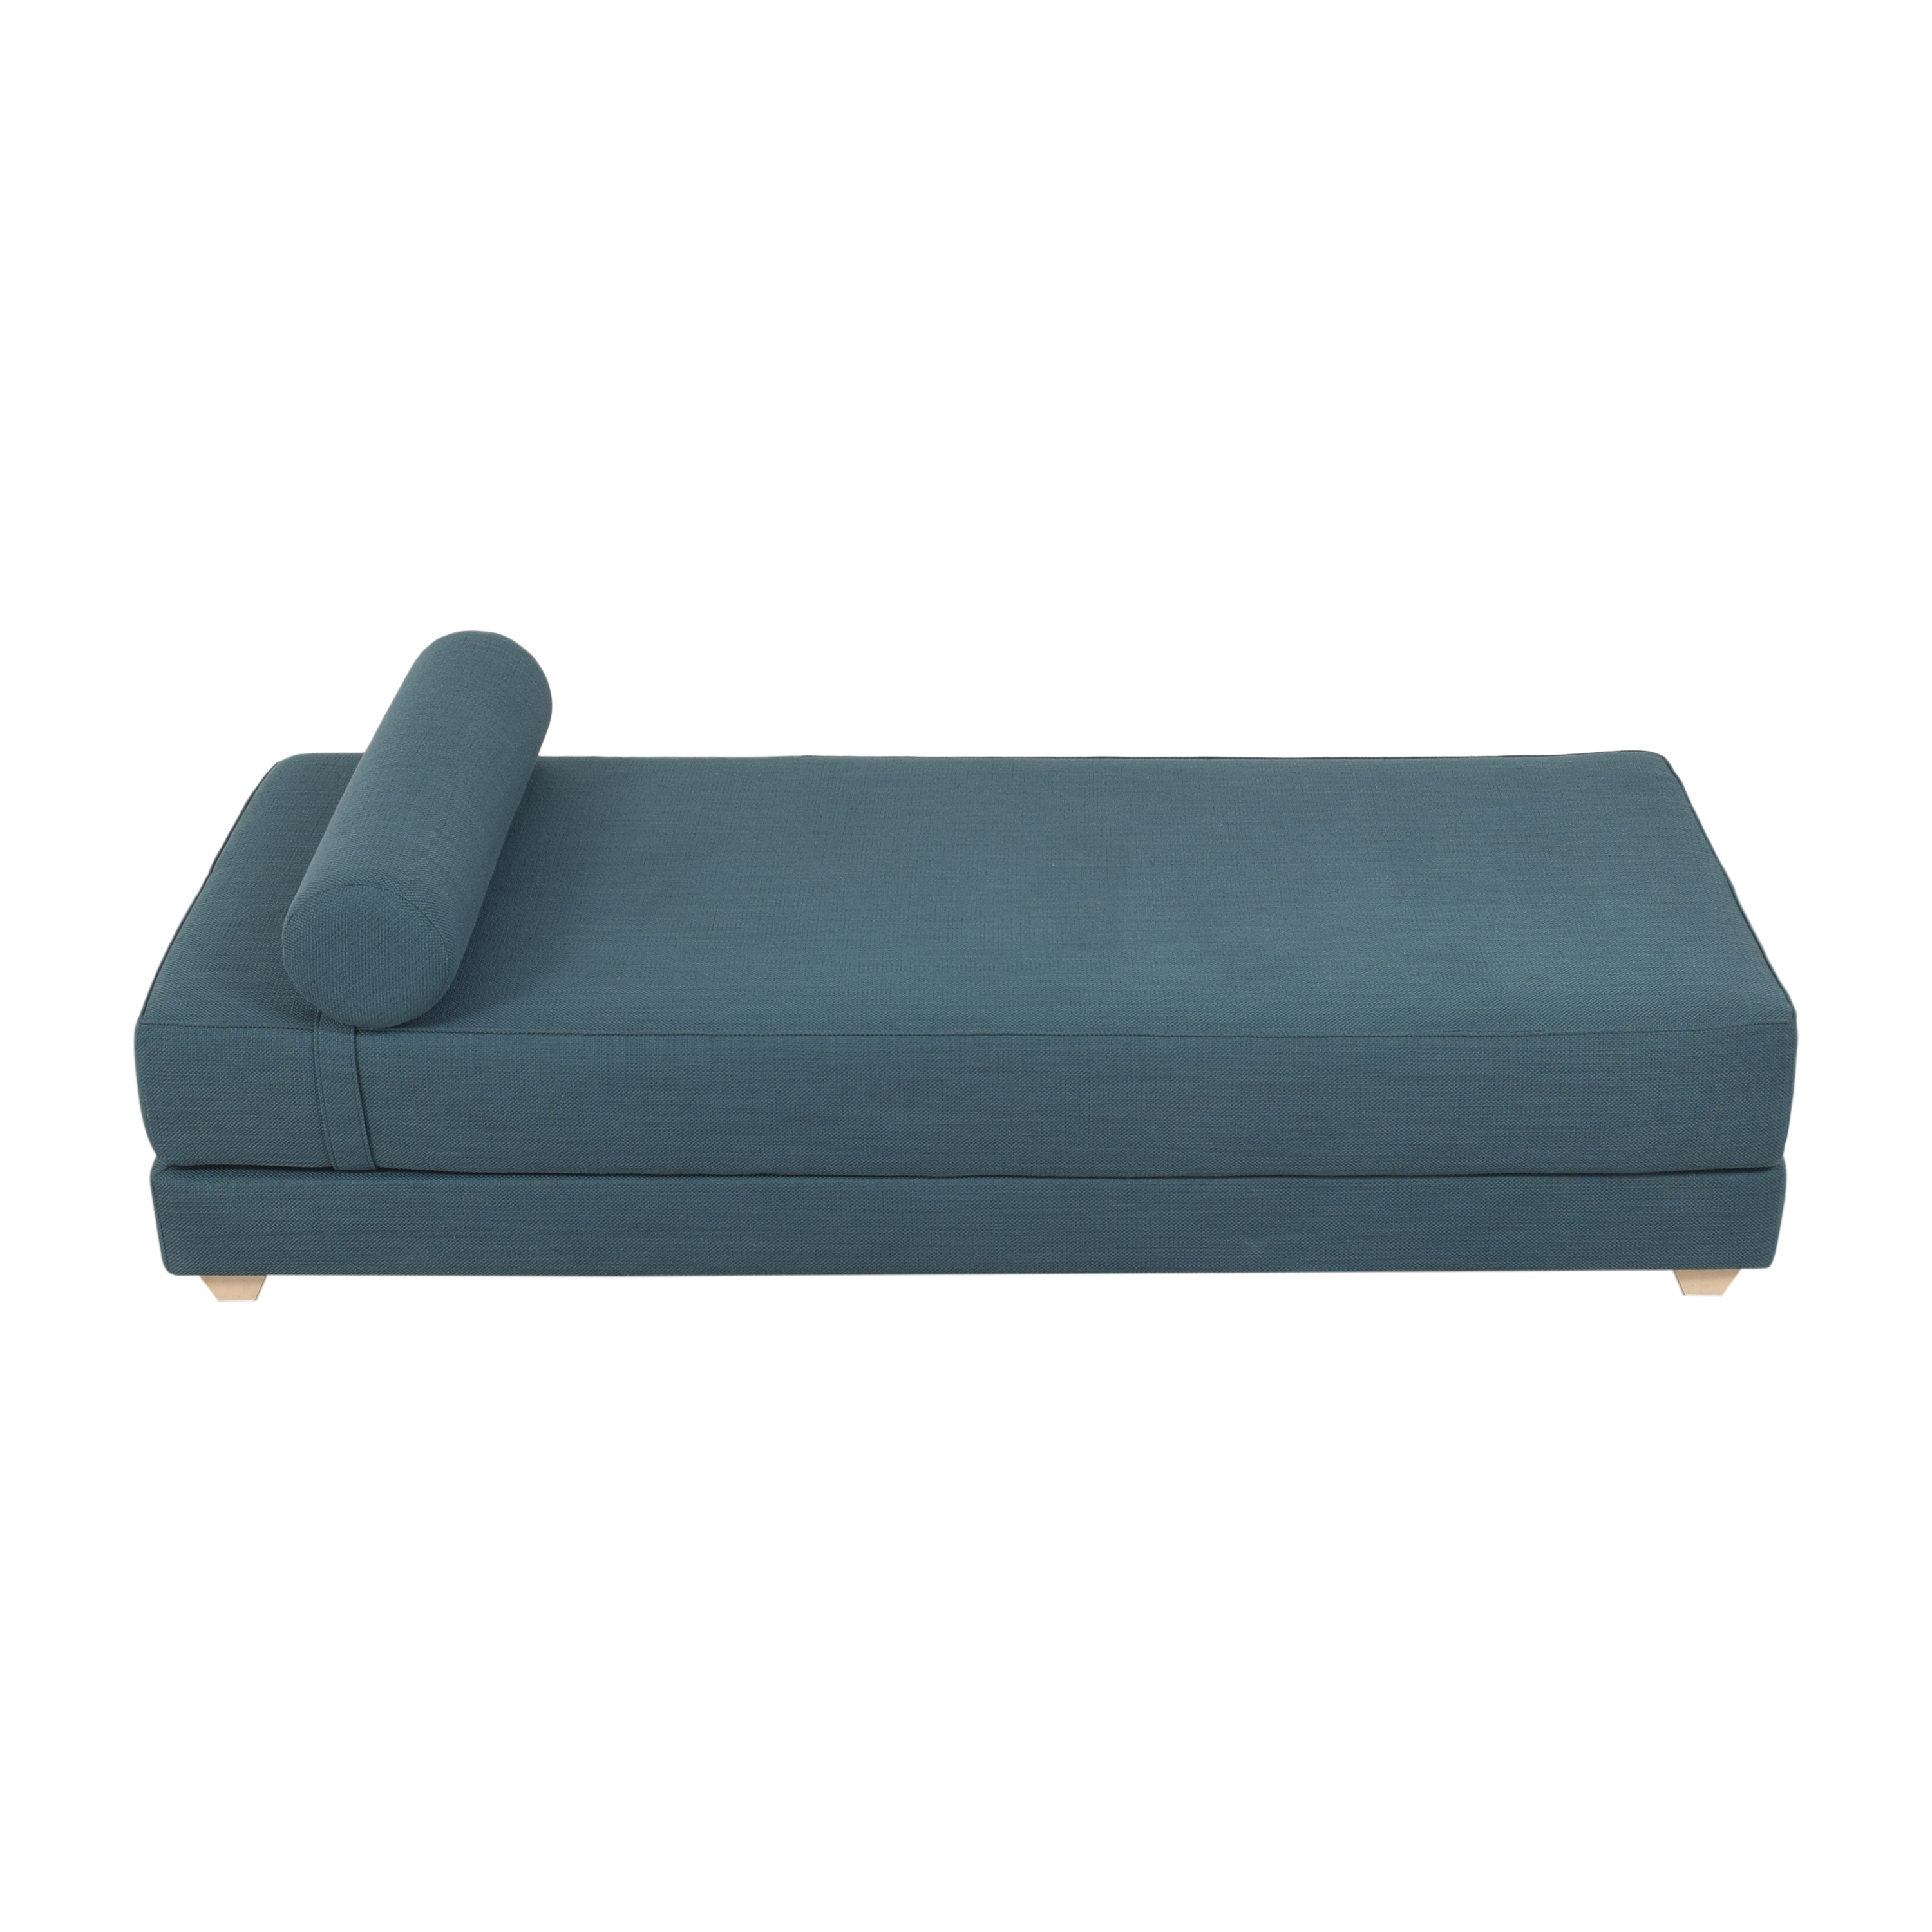 shop CB2 Lubi Sleeper Daybed CB2 Sofa Beds